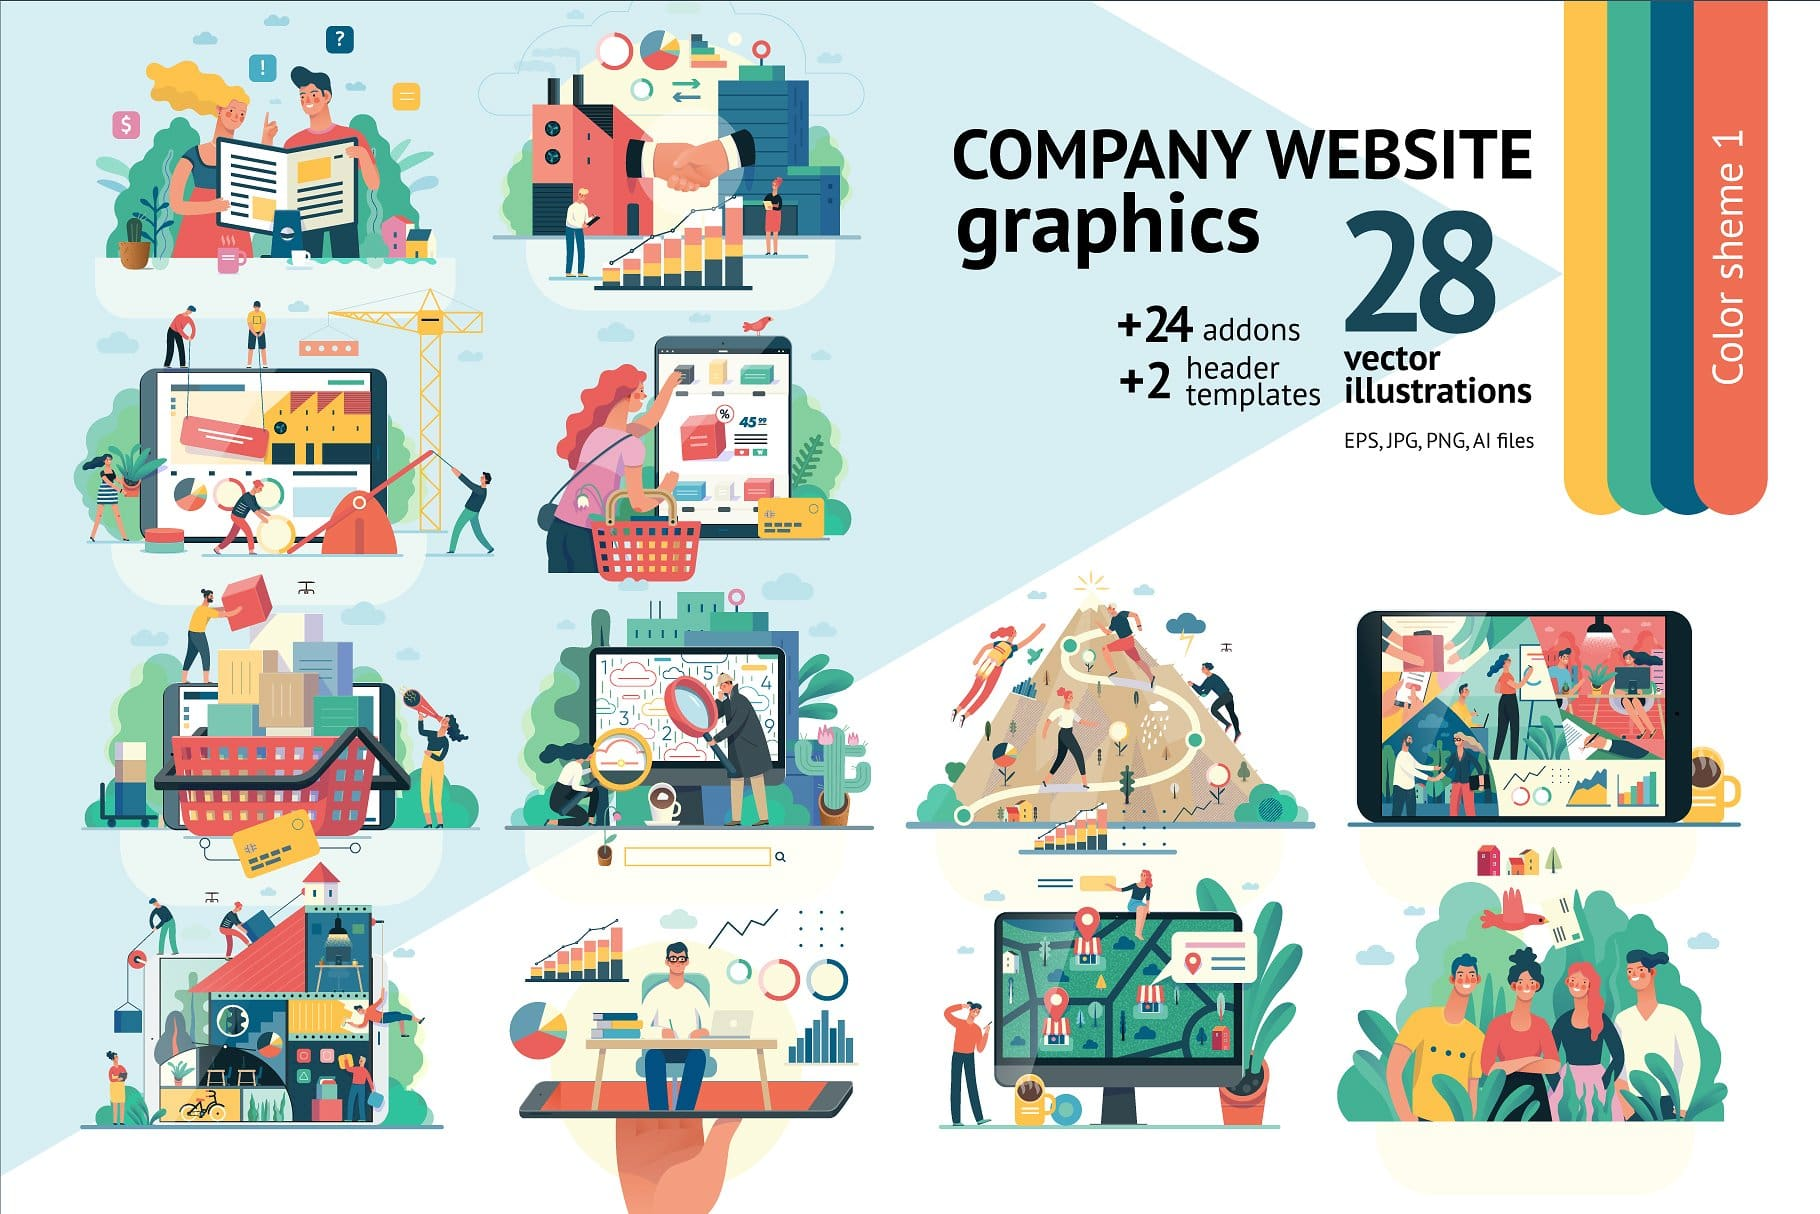 10 Premium Vector Graphics from CreativeMarket.com - Feb 2019 5